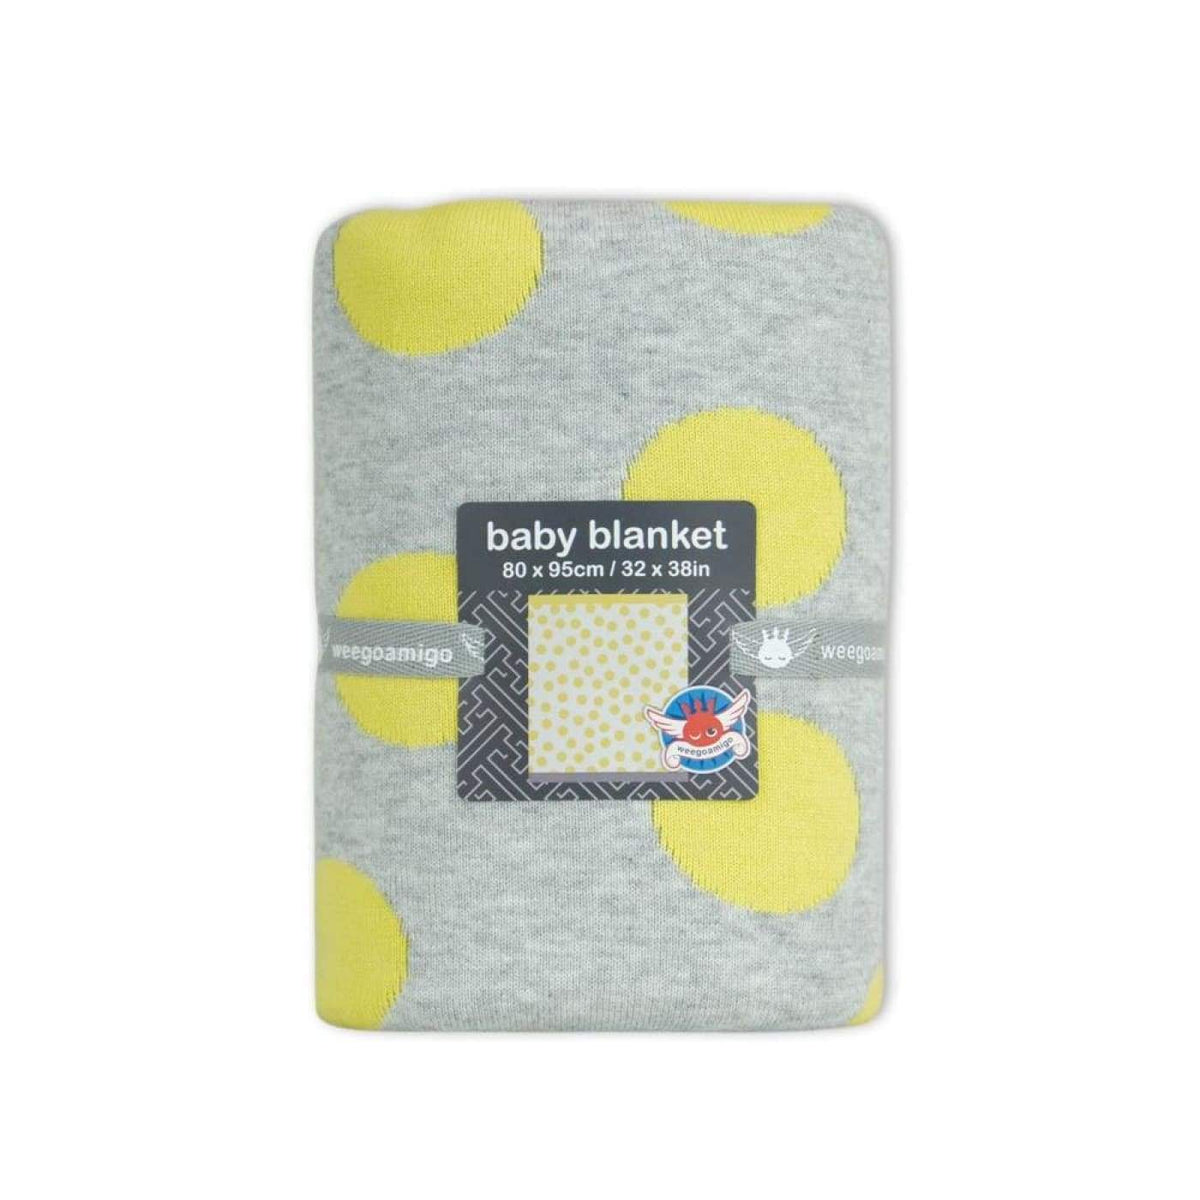 WeeGoAmigo Journee Cotton Knit Blanket - Morgan Yellow - NURSERY & BEDTIME - COT MANCHESTER